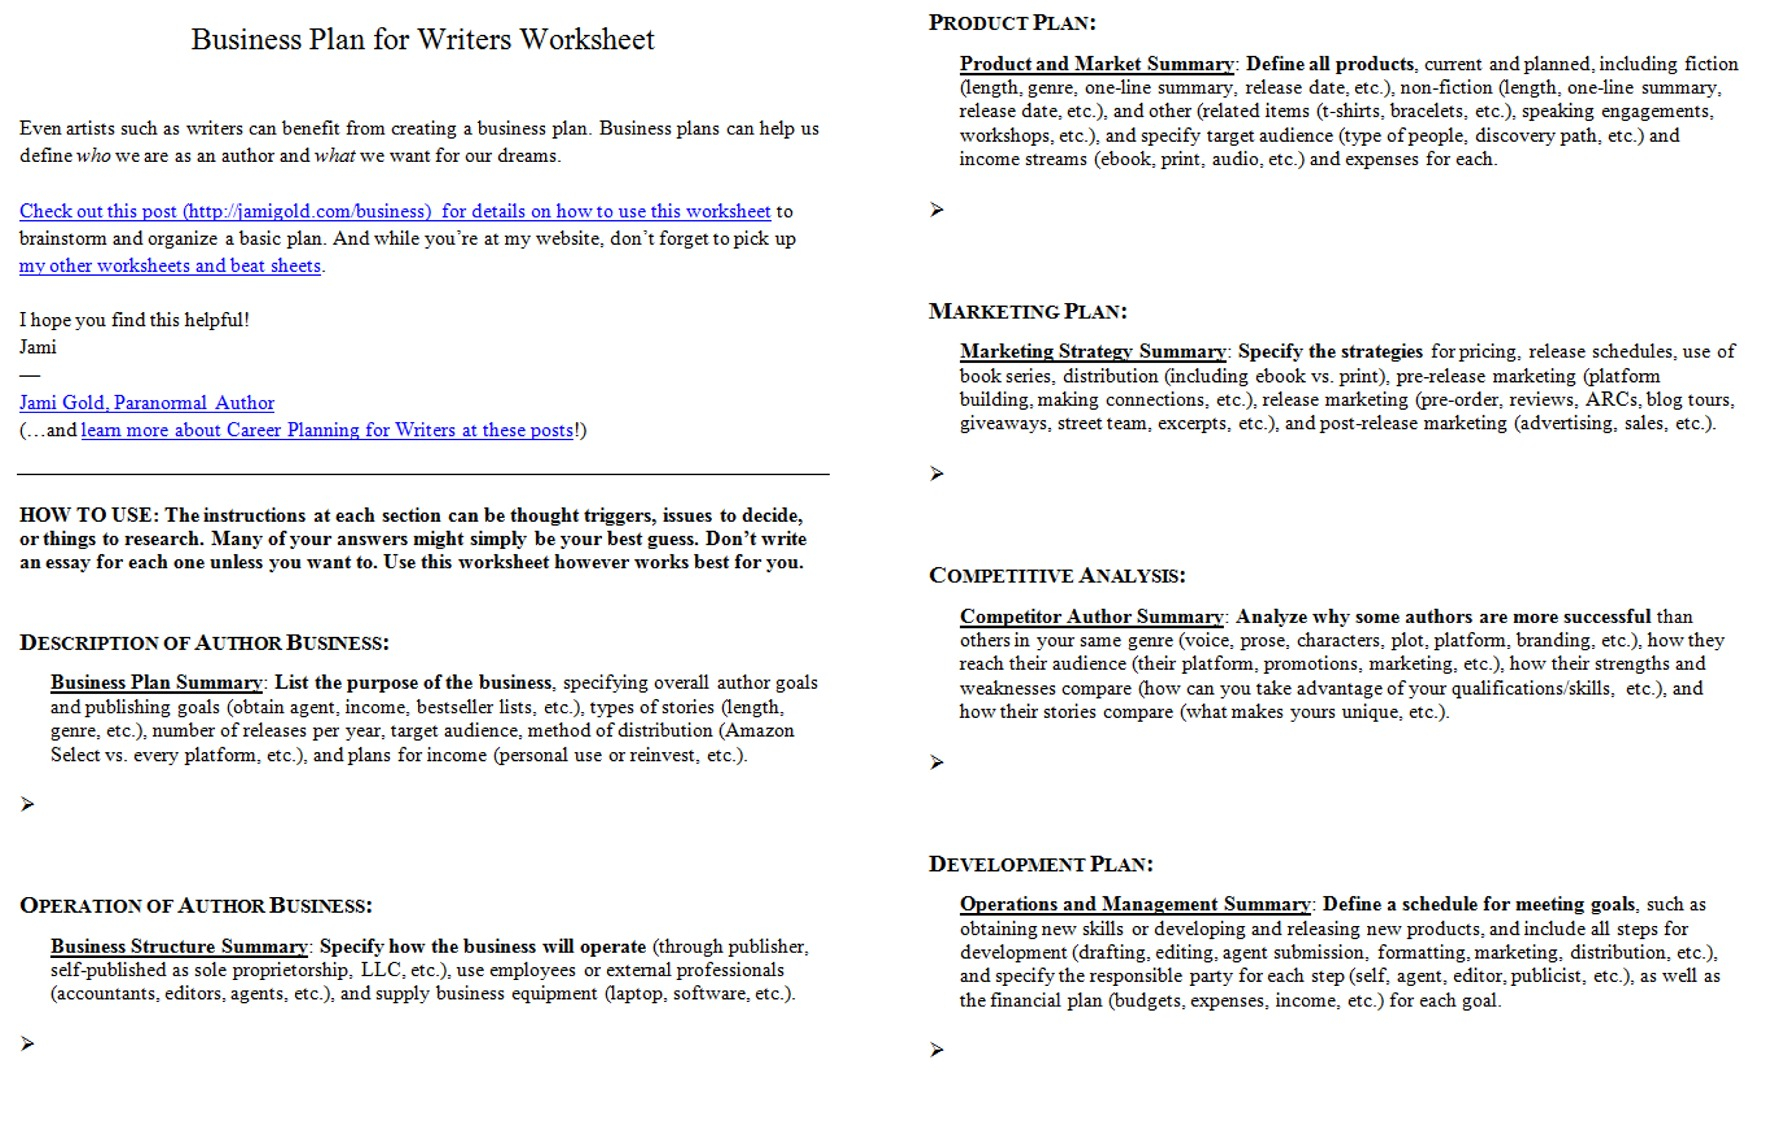 Weirdmailus  Surprising Worksheets For Writers  Jami Gold Paranormal Author With Likable Screen Shot Of Both Pages Of The Business Plan For Writers Worksheet With Cute Ser V Estar Worksheet Also Vehicle Inspection Worksheet In Addition Adding To Ten Worksheets And Multiplication Mad Minute Worksheets As Well As Nd Grade Money Worksheet Additionally Create A Spelling Worksheet From Jamigoldcom With Weirdmailus  Likable Worksheets For Writers  Jami Gold Paranormal Author With Cute Screen Shot Of Both Pages Of The Business Plan For Writers Worksheet And Surprising Ser V Estar Worksheet Also Vehicle Inspection Worksheet In Addition Adding To Ten Worksheets From Jamigoldcom